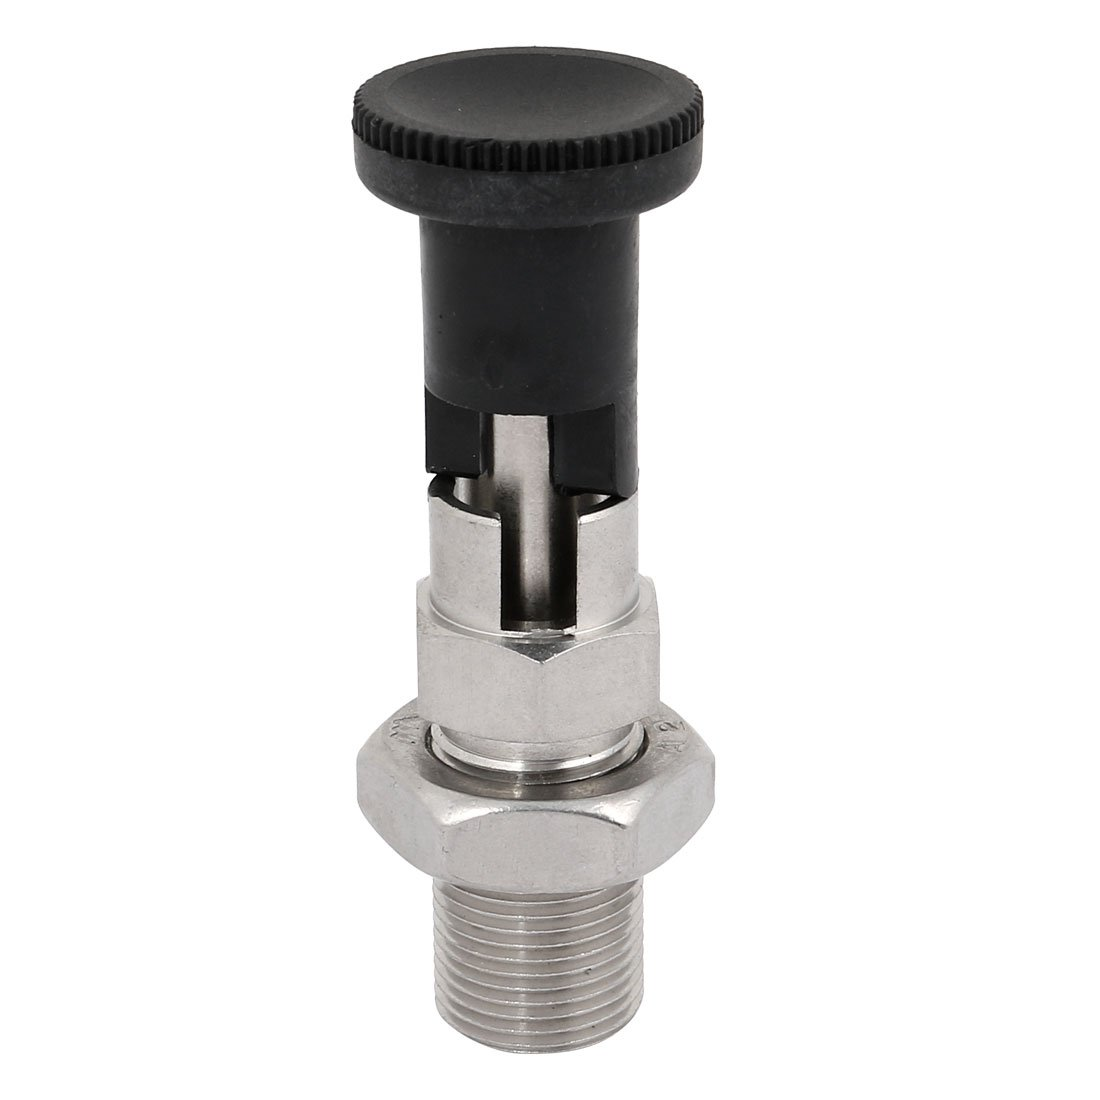 uxcell M20 Thread 6mm Pin Dia Stainless Steel Lock-Out Type Indexing Plunger w Lock Nut